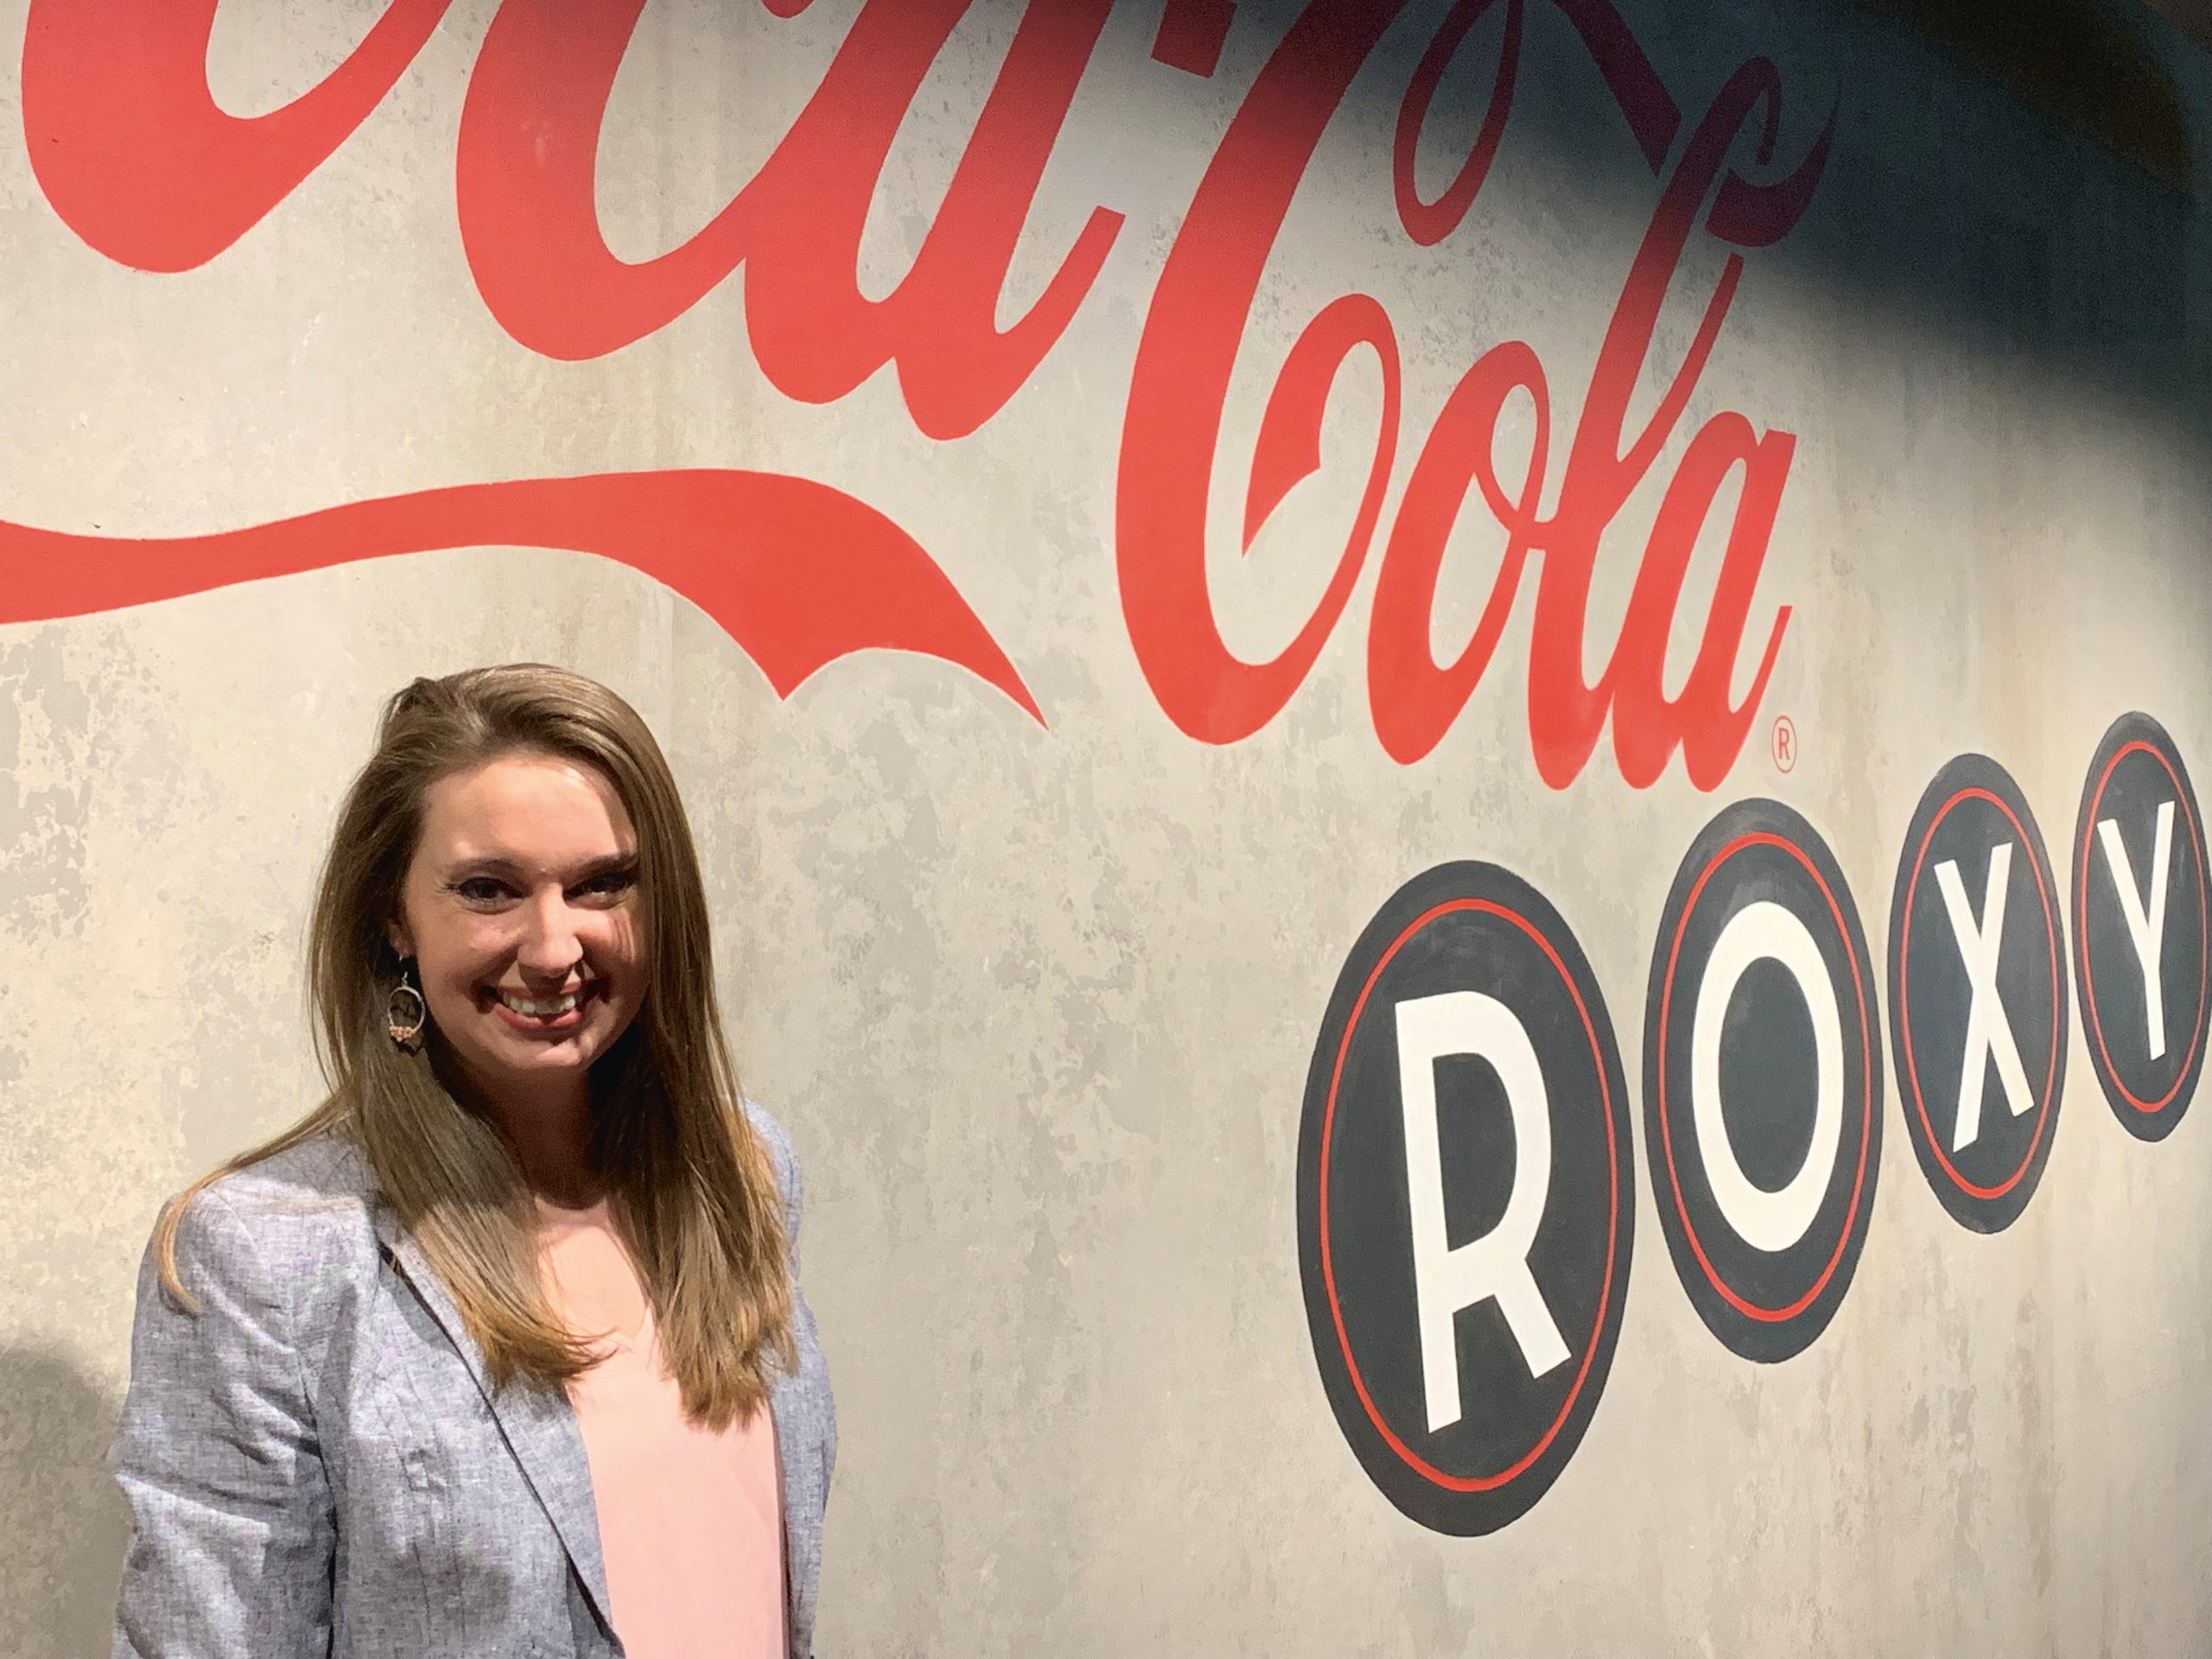 Young man stands next to a wall that says Coca-Cola Roxy